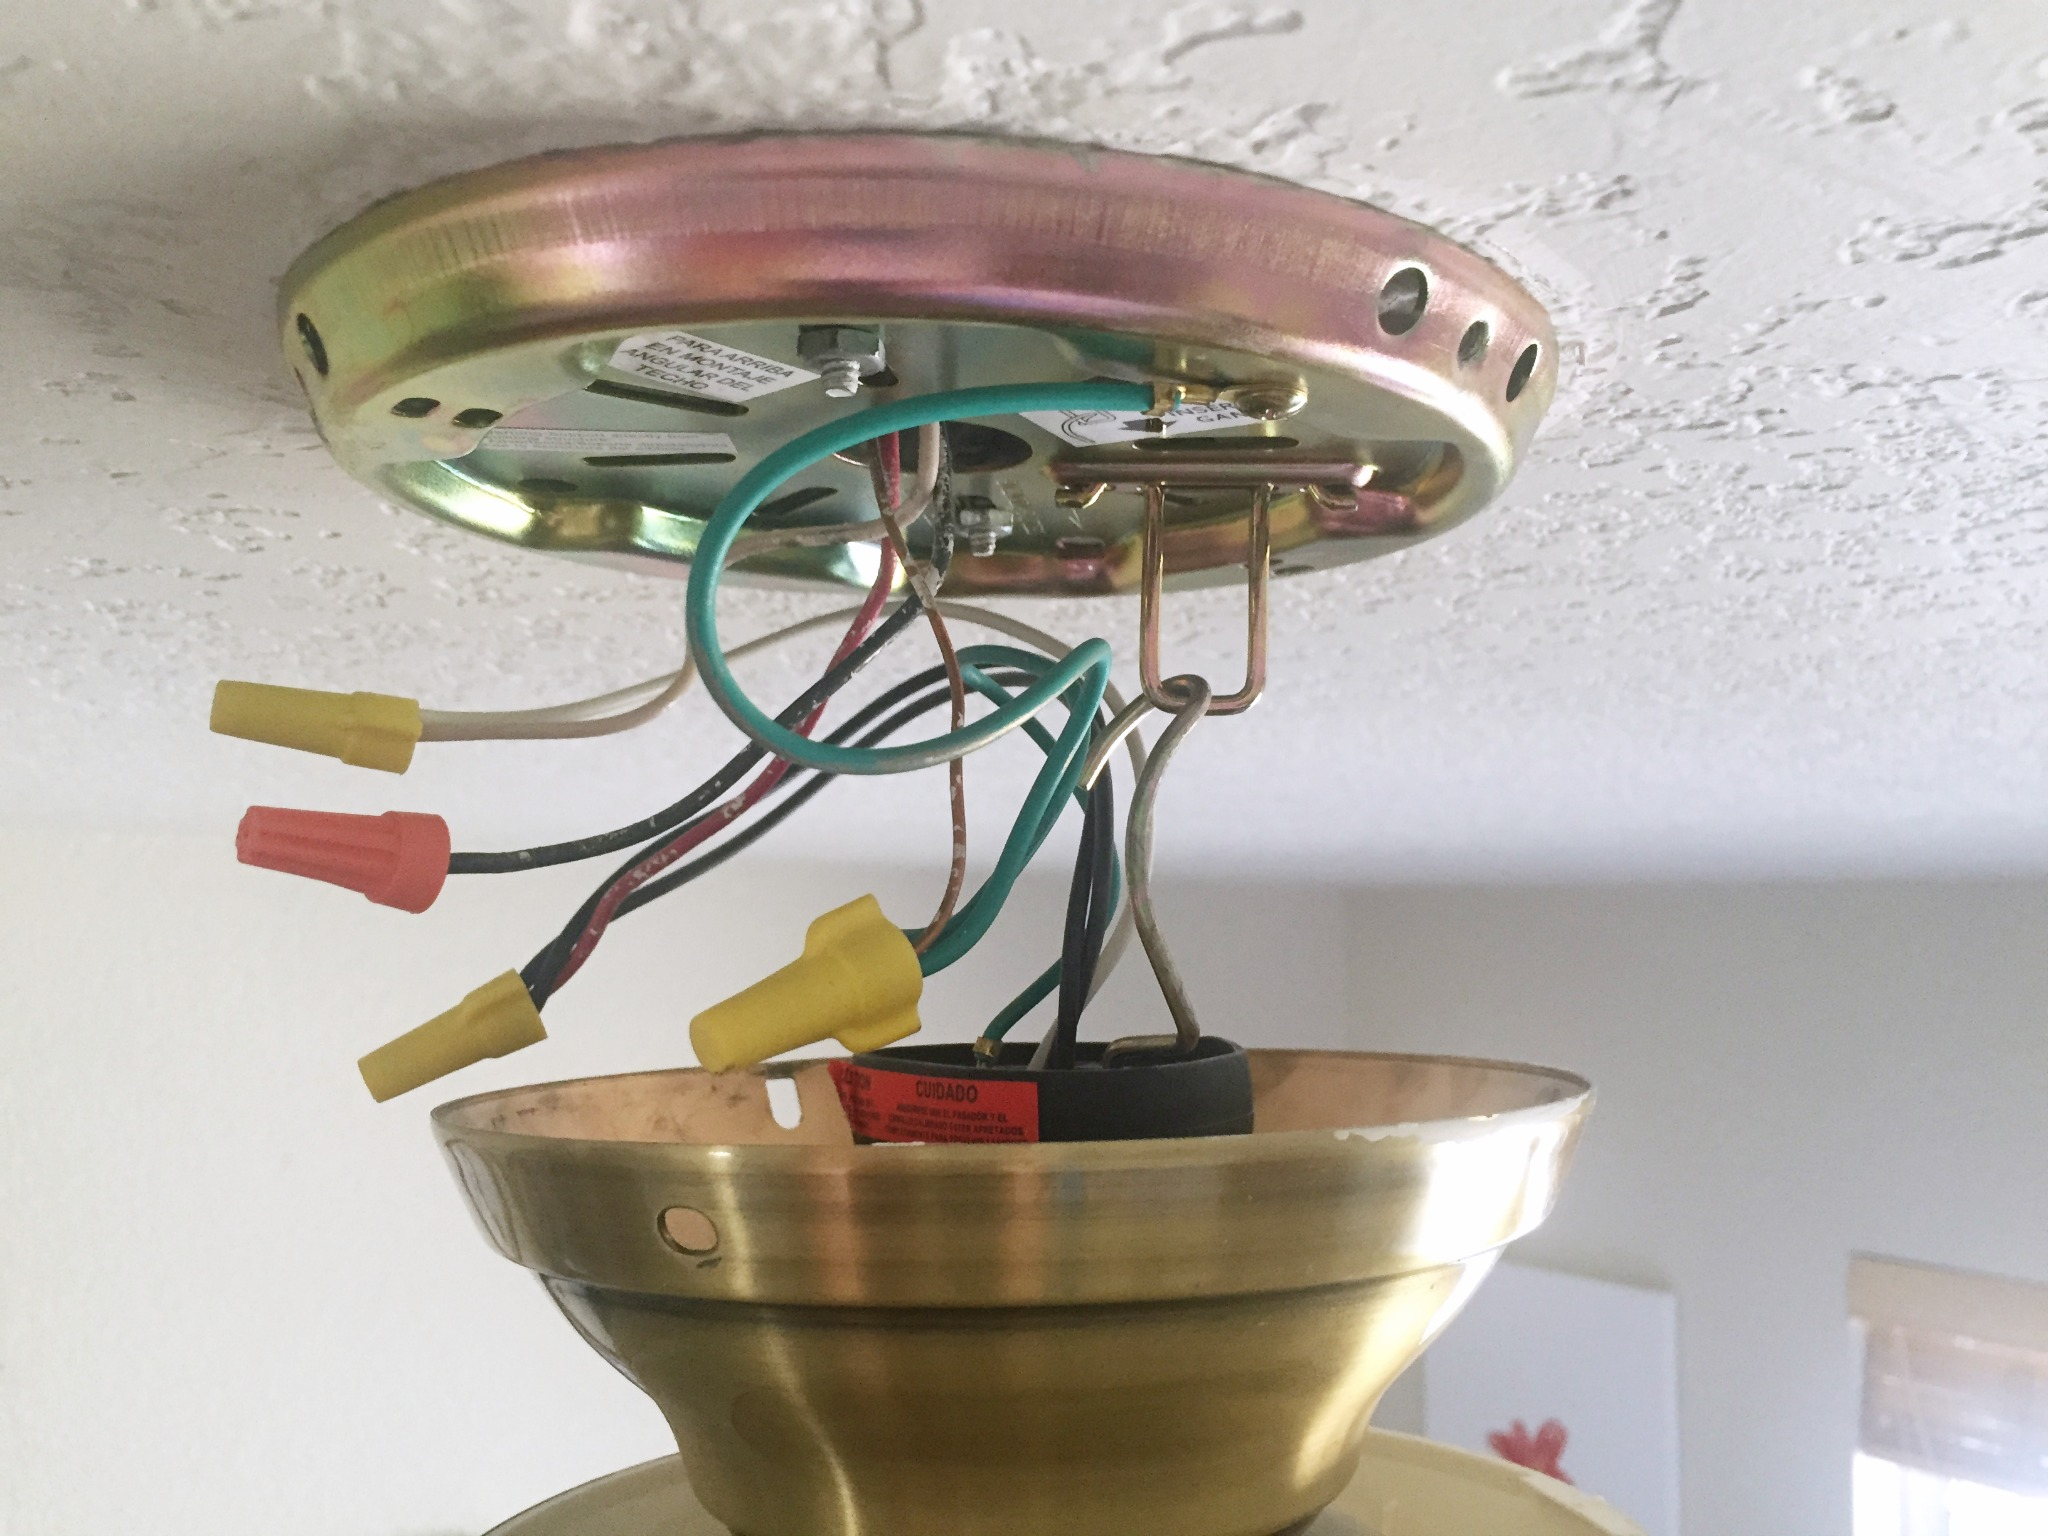 Easy Home Facelifts Lighting Eclectic Momsense Old House Wiring To New Check Your And Connections Switch The Power Back On For A Test Run Turn It Off Before Mounting Attaching Fixtures